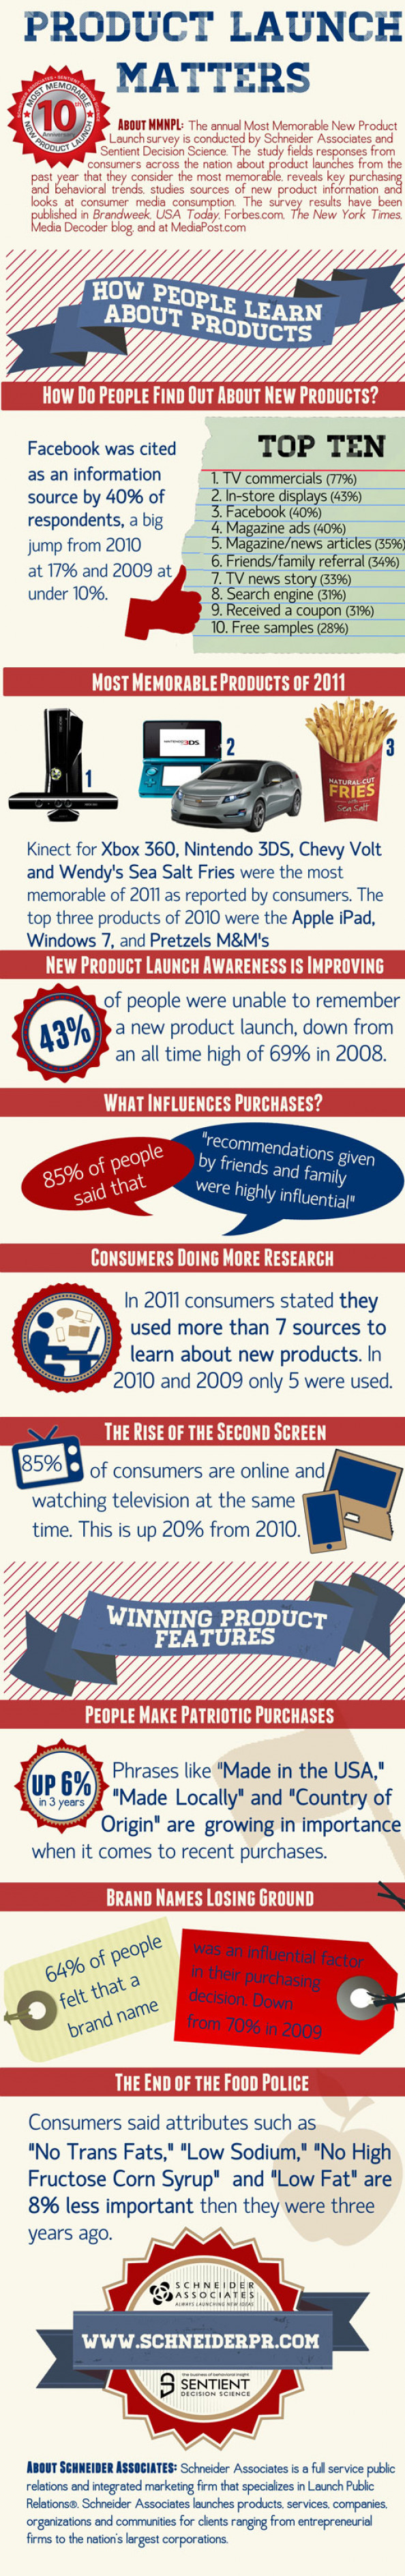 How People Learn About New Products Infographic